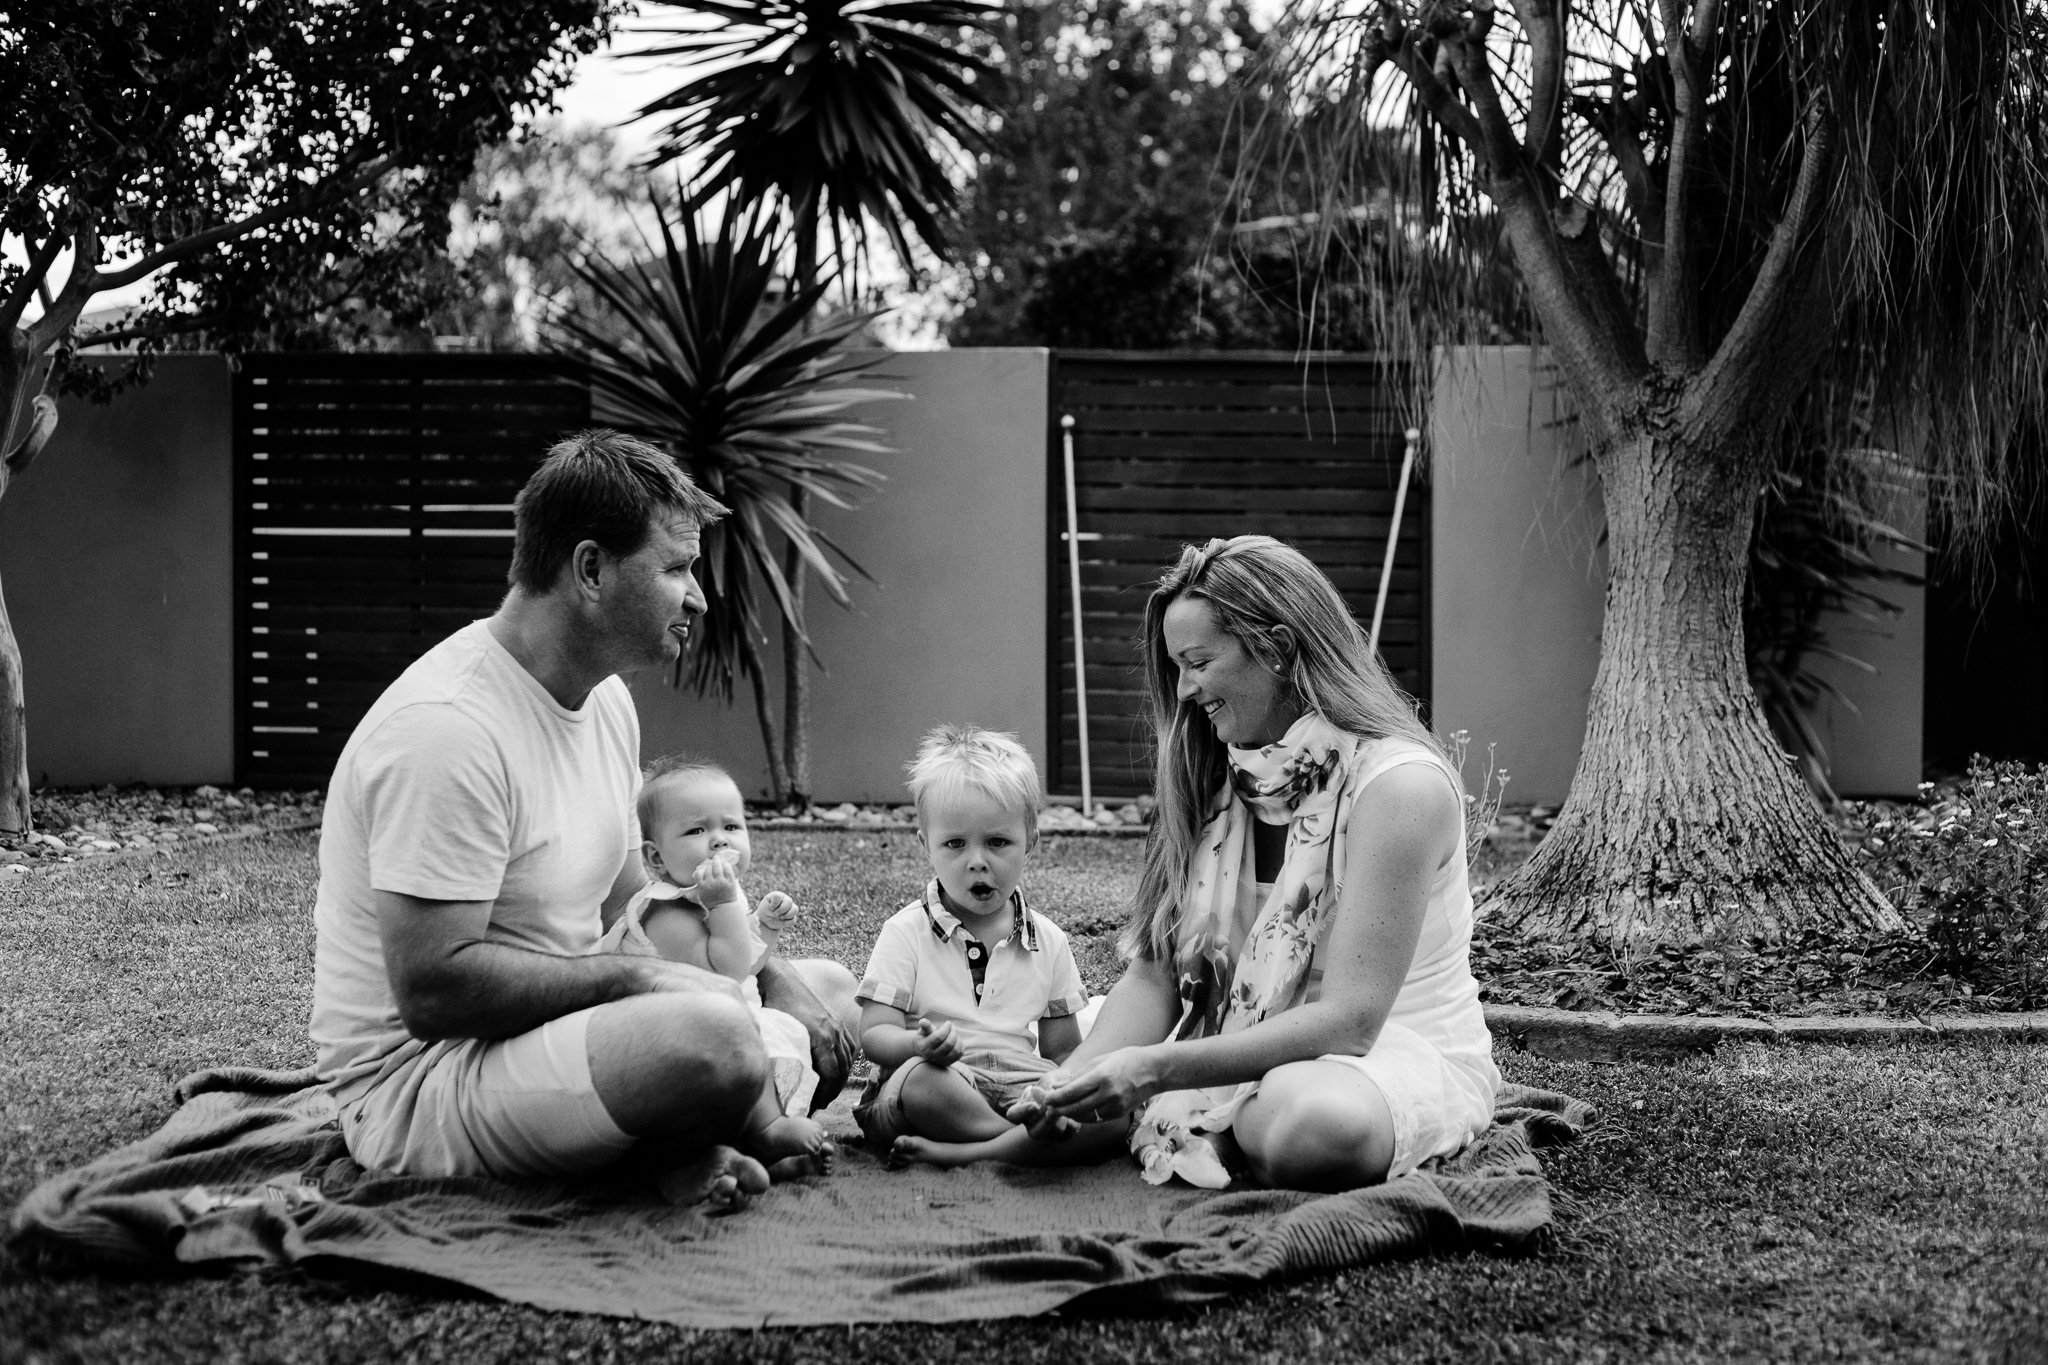 Mrs-Gardiner_Margaret-River-Family-Photographer-Inhome-Session-Busselton-South-West-Documentary-Photography-ACJT-12.jpg